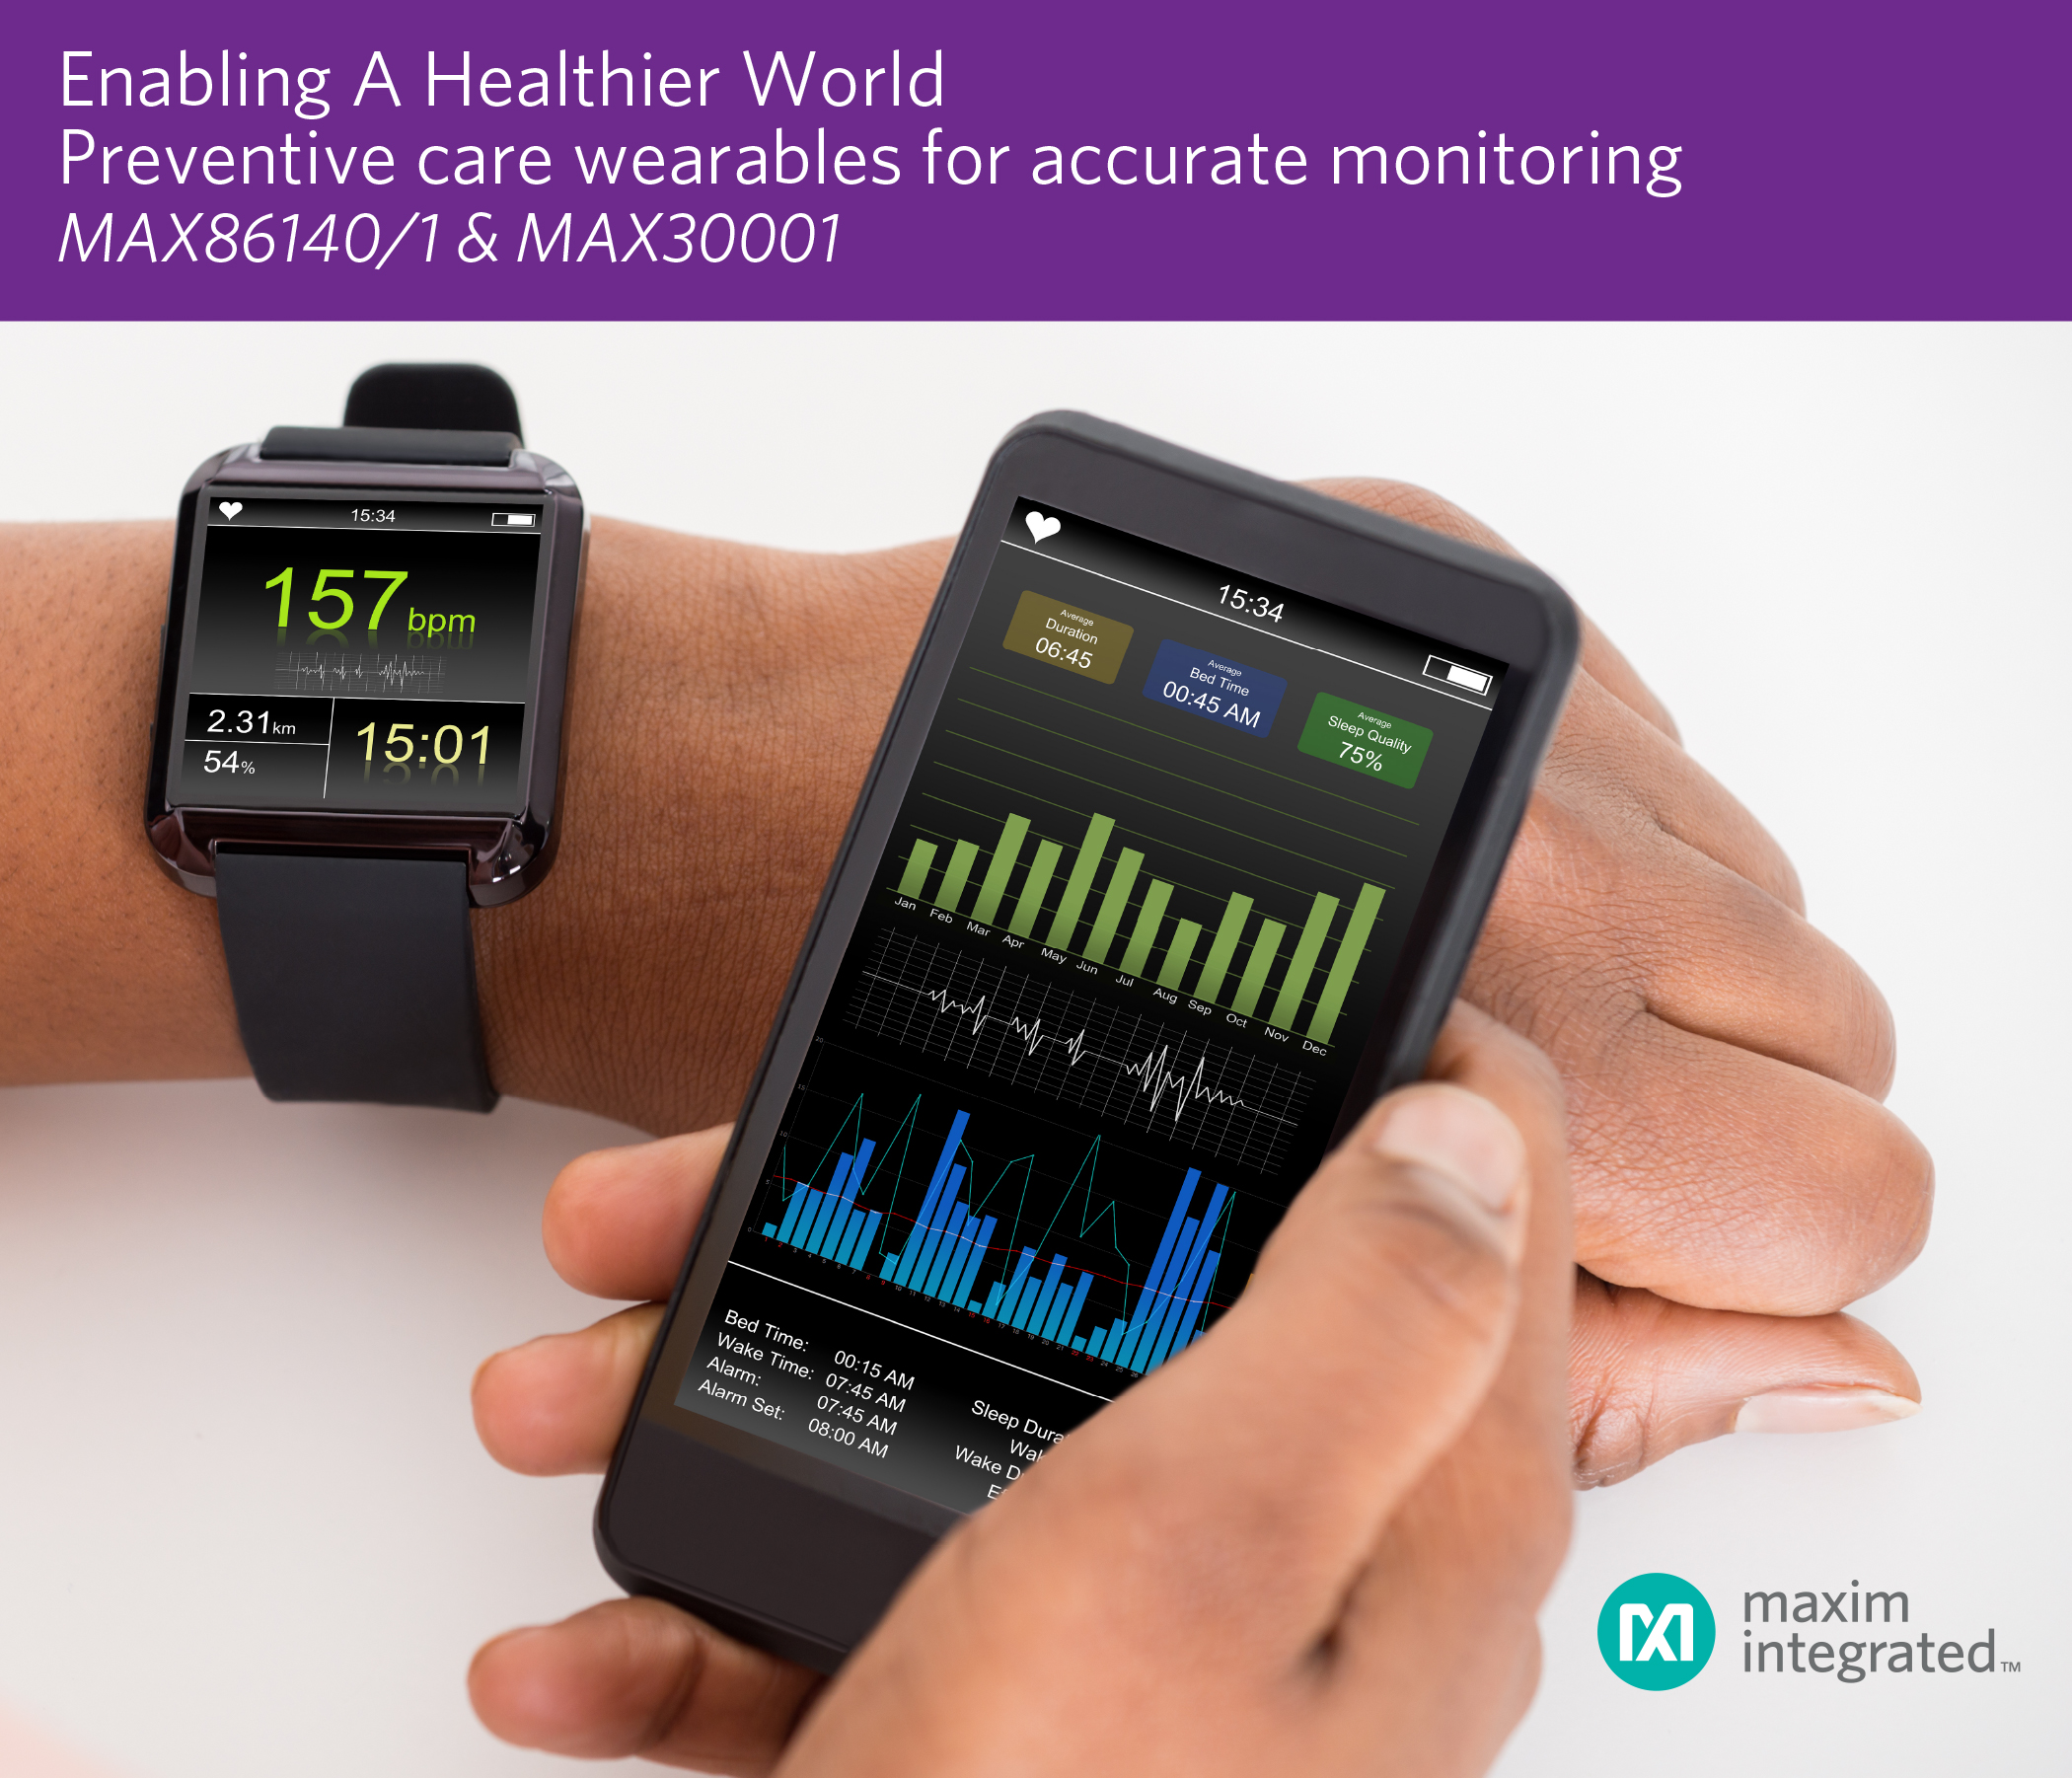 Maxim enabling a healthier world with wearables for preventive press photos ccuart Images